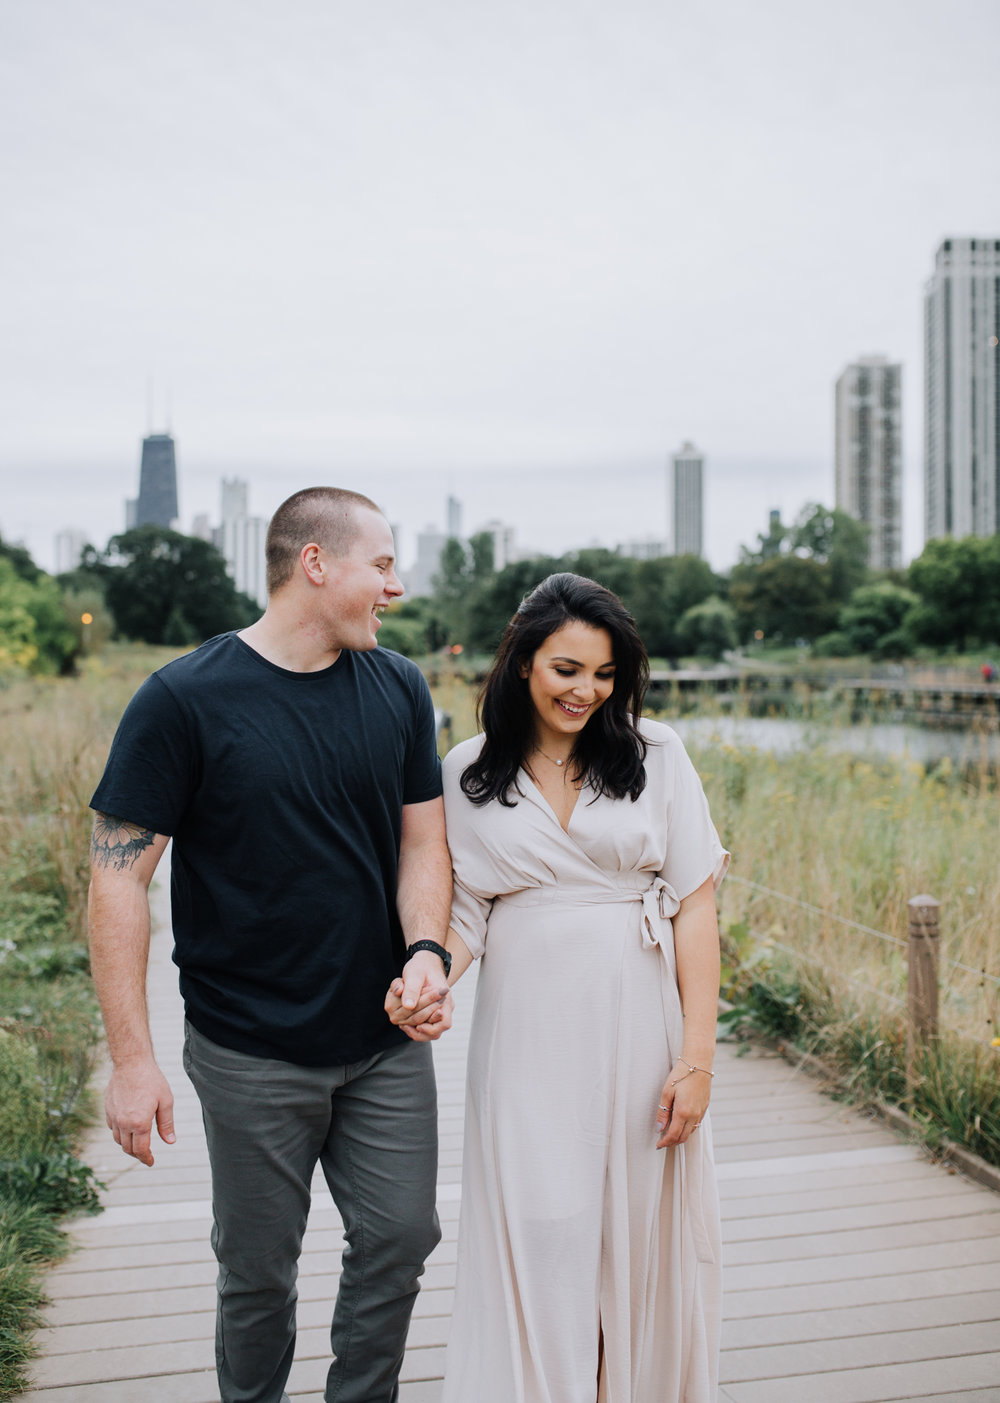 ashlee_oneil_photography_family_lincoln_park_chicago.jpg